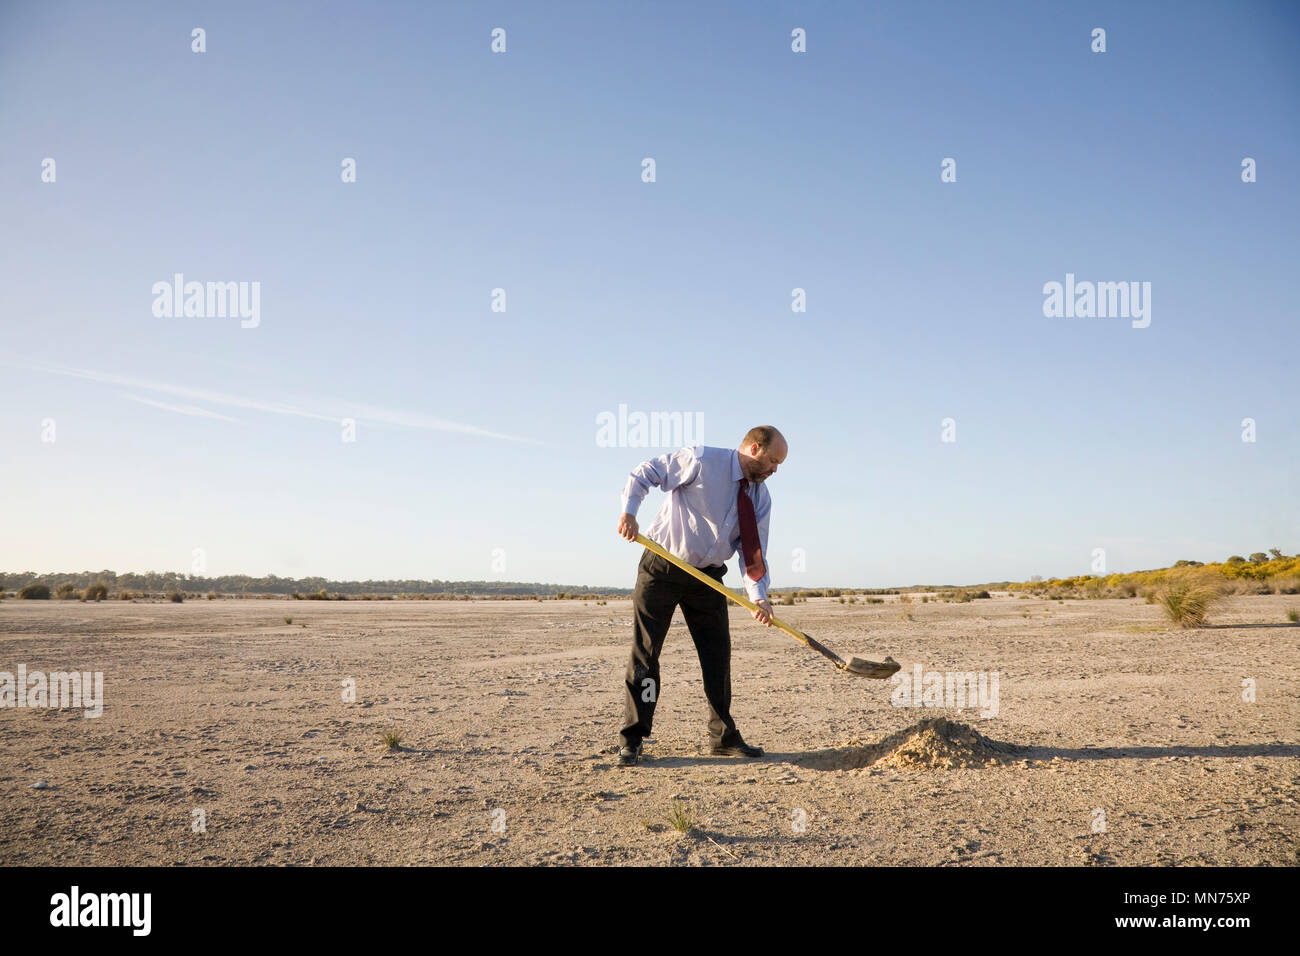 A business man digging a hole, business concepts. Stock Photo